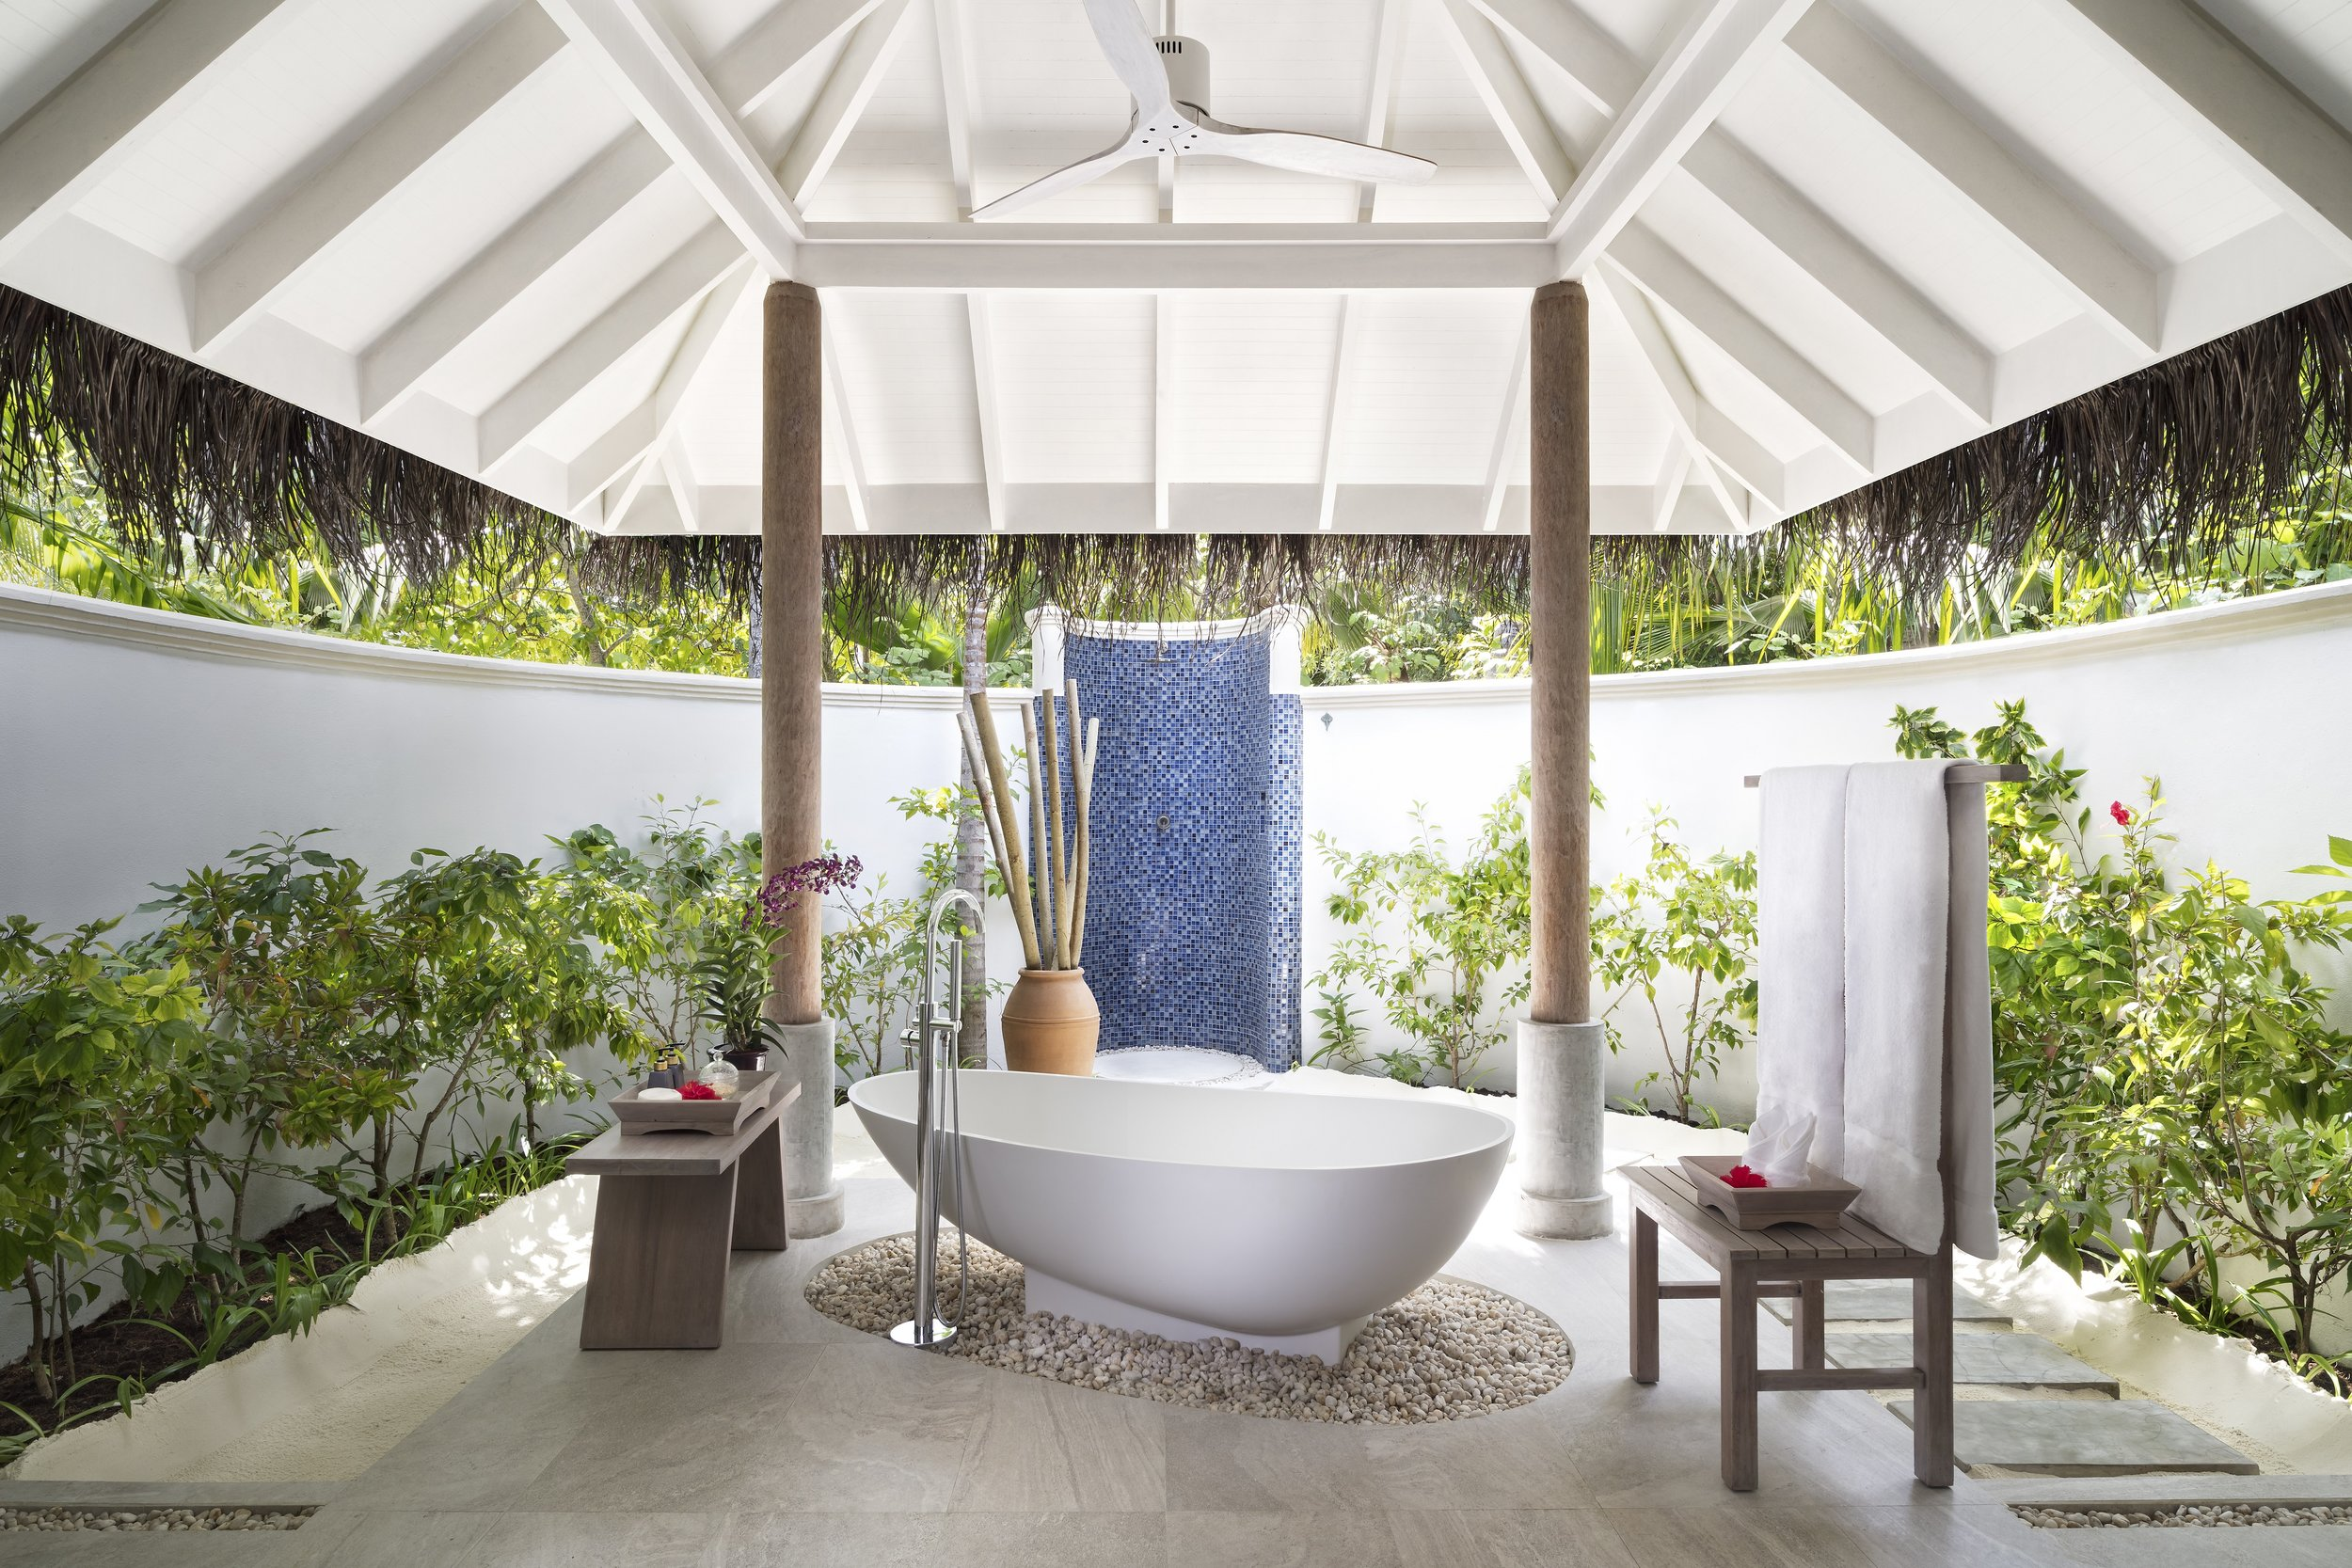 Anantara_Dhigu_Sunset_Beach_Villa_Bathroom.jpg